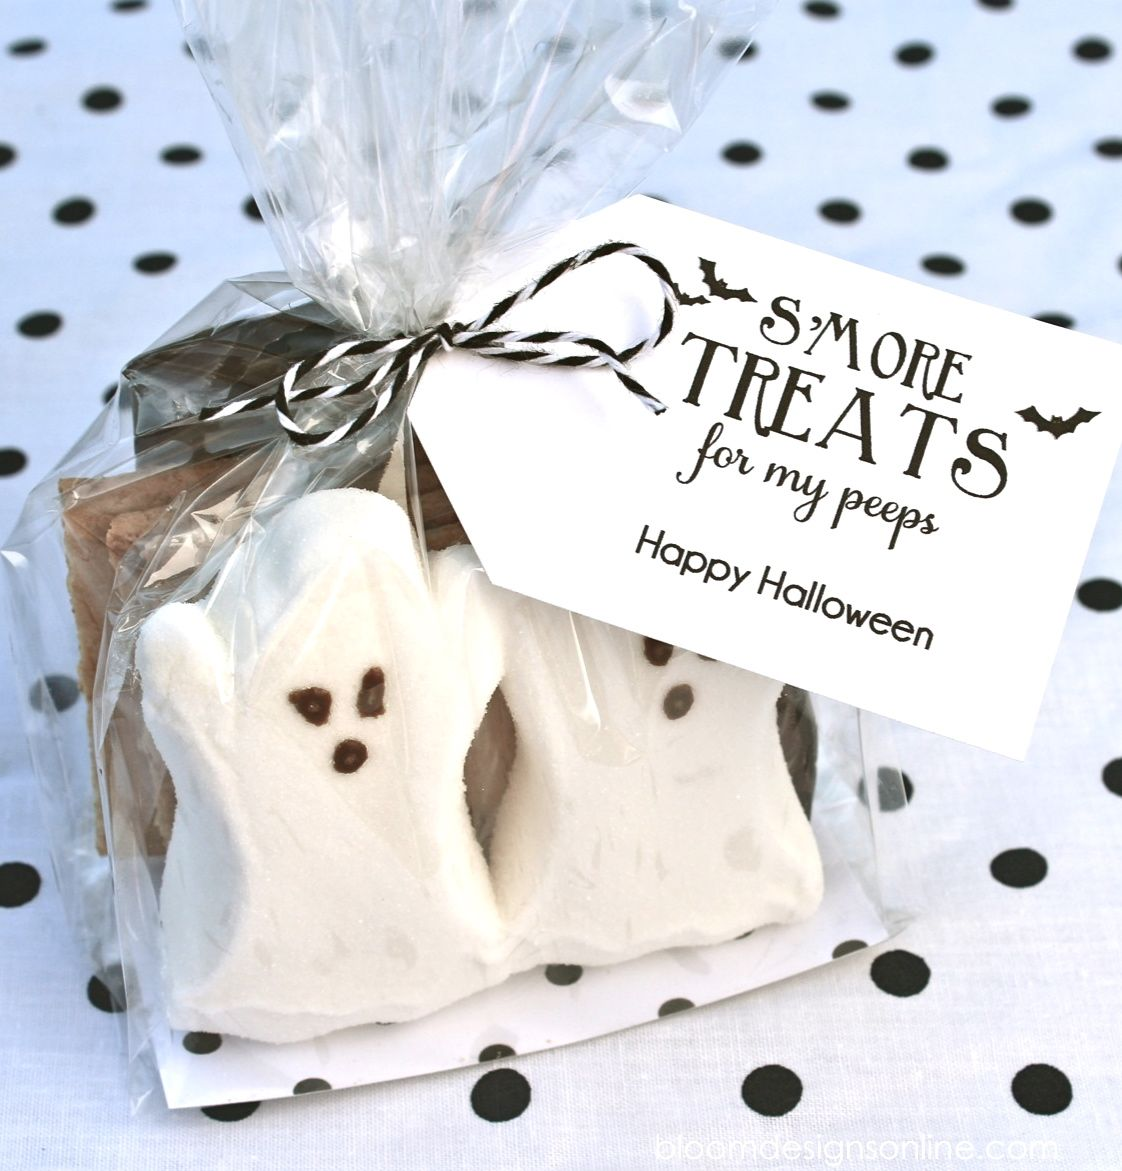 Smore Treats For My Peeps | Graham, Gift and Halloween ideas